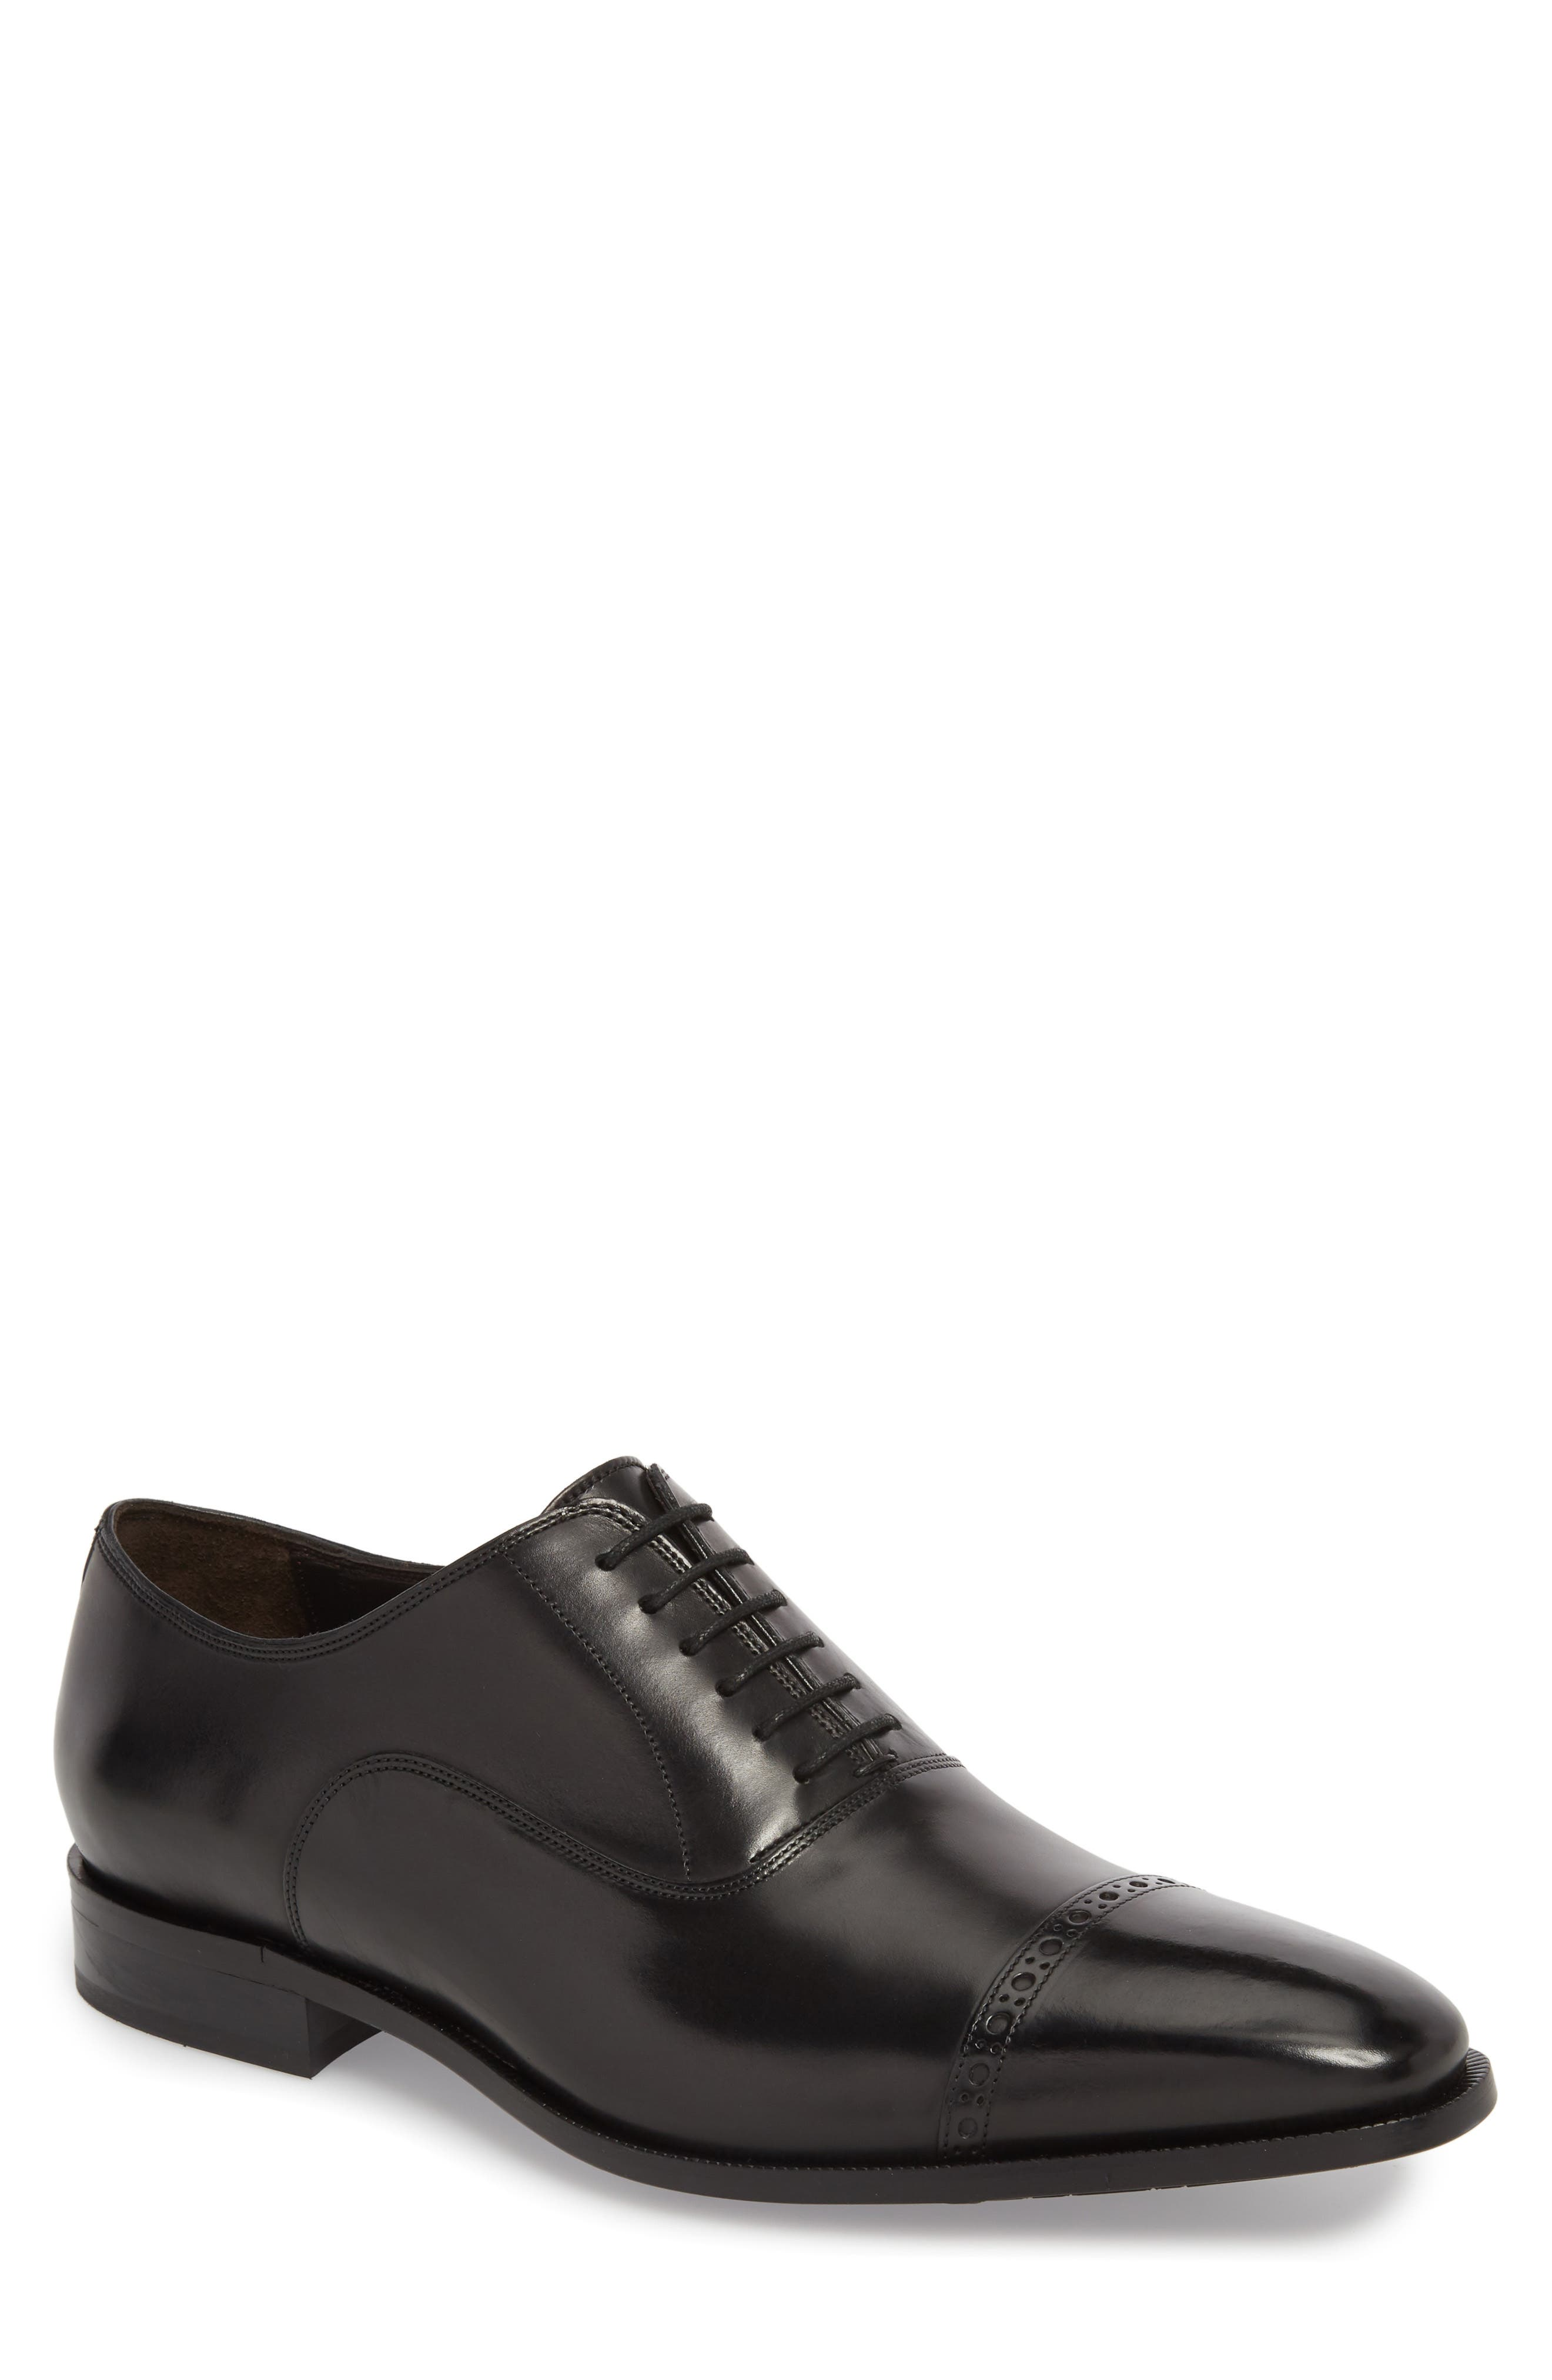 To Boot New York Harding Cap Toe Oxford- Black